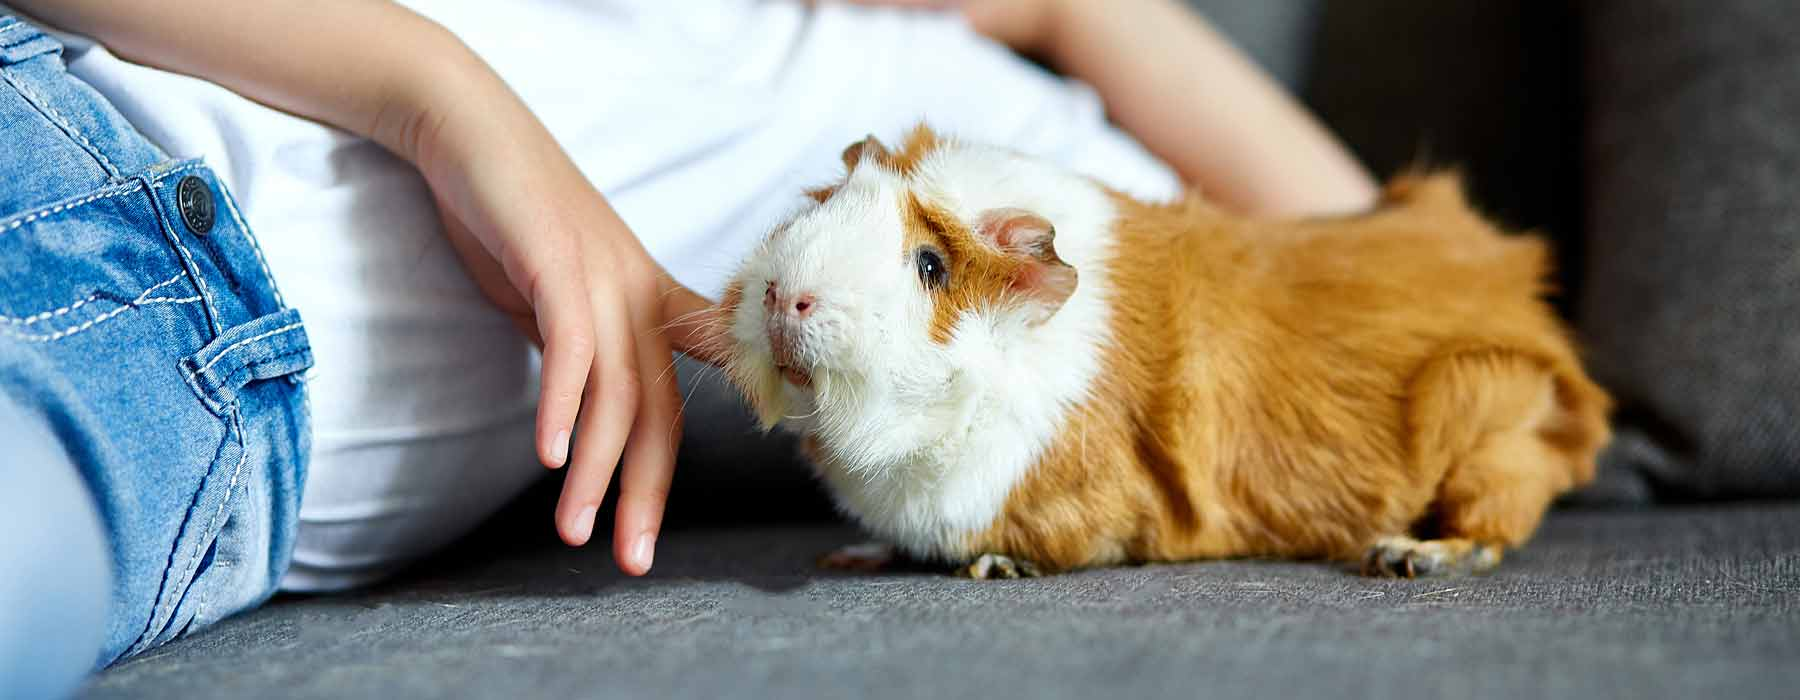 child laying on the floor with a ginger and white abyssinian guinea pig